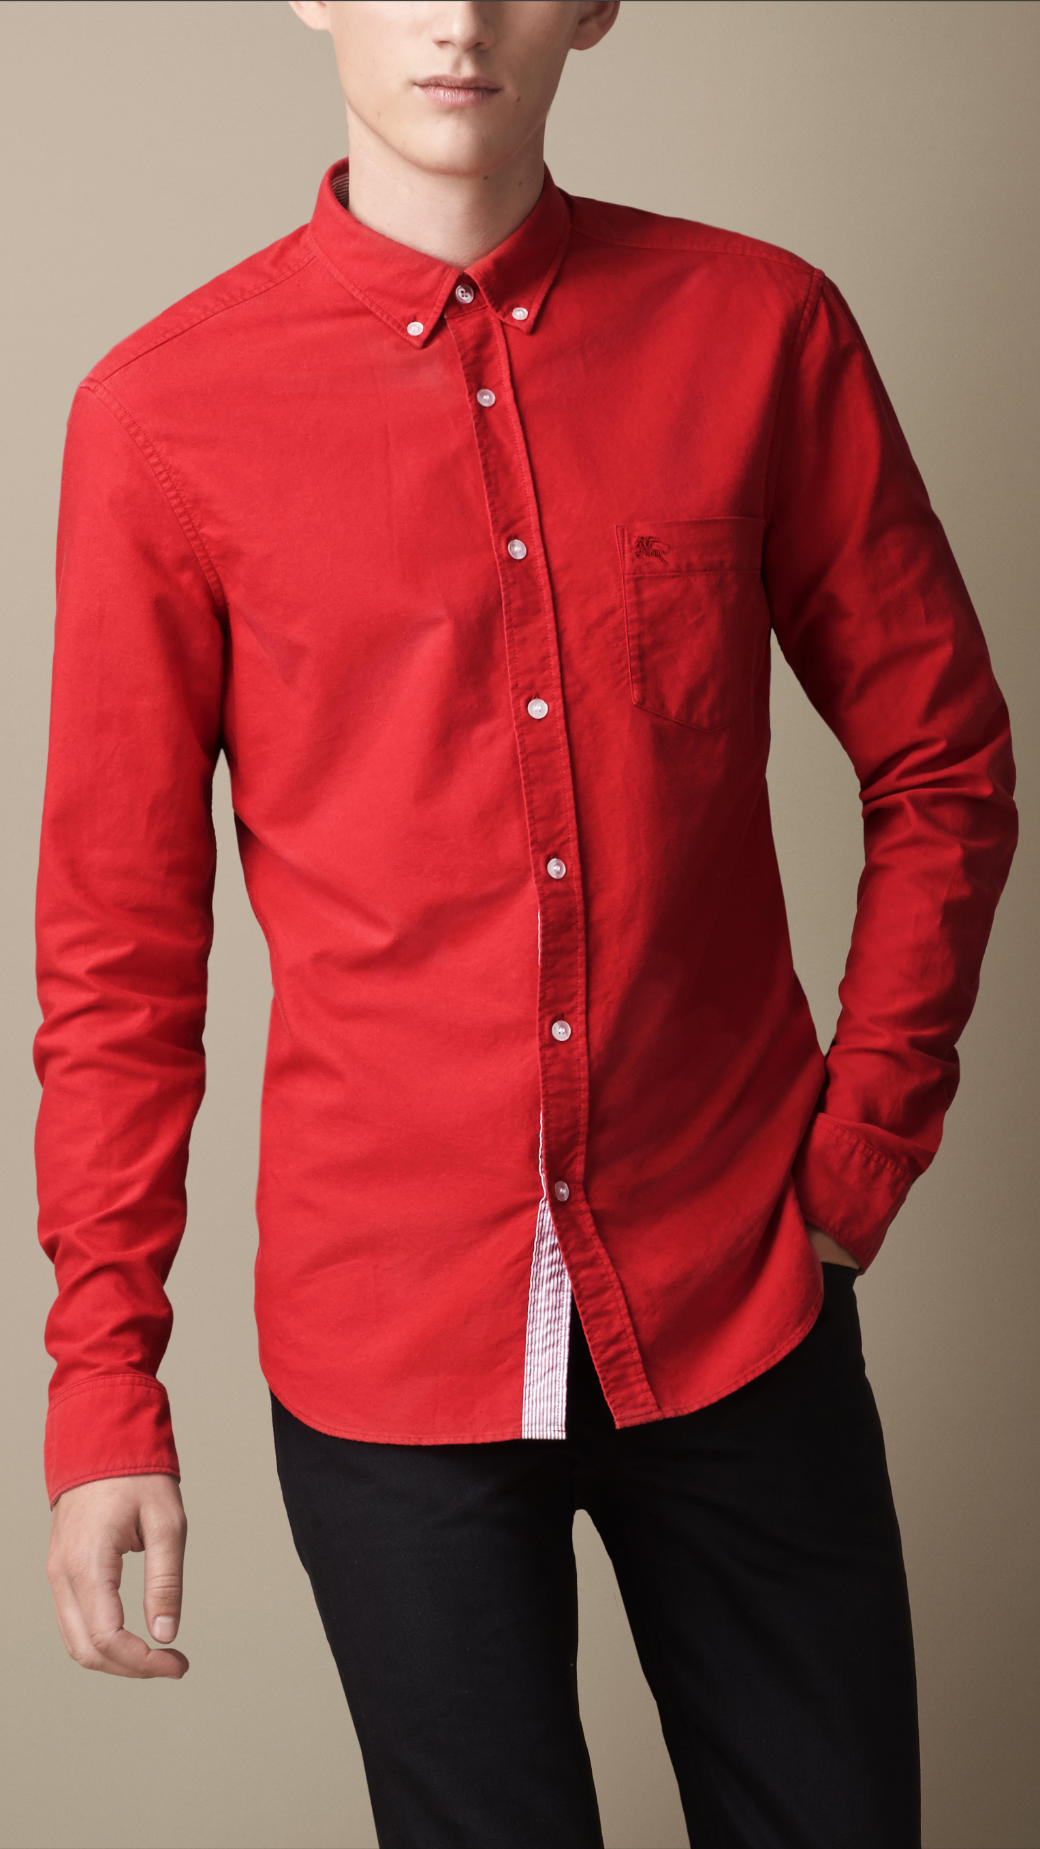 29a15b0f Free photo: Red cotton shirt - Texture, Shirt, Red - Free Download ...